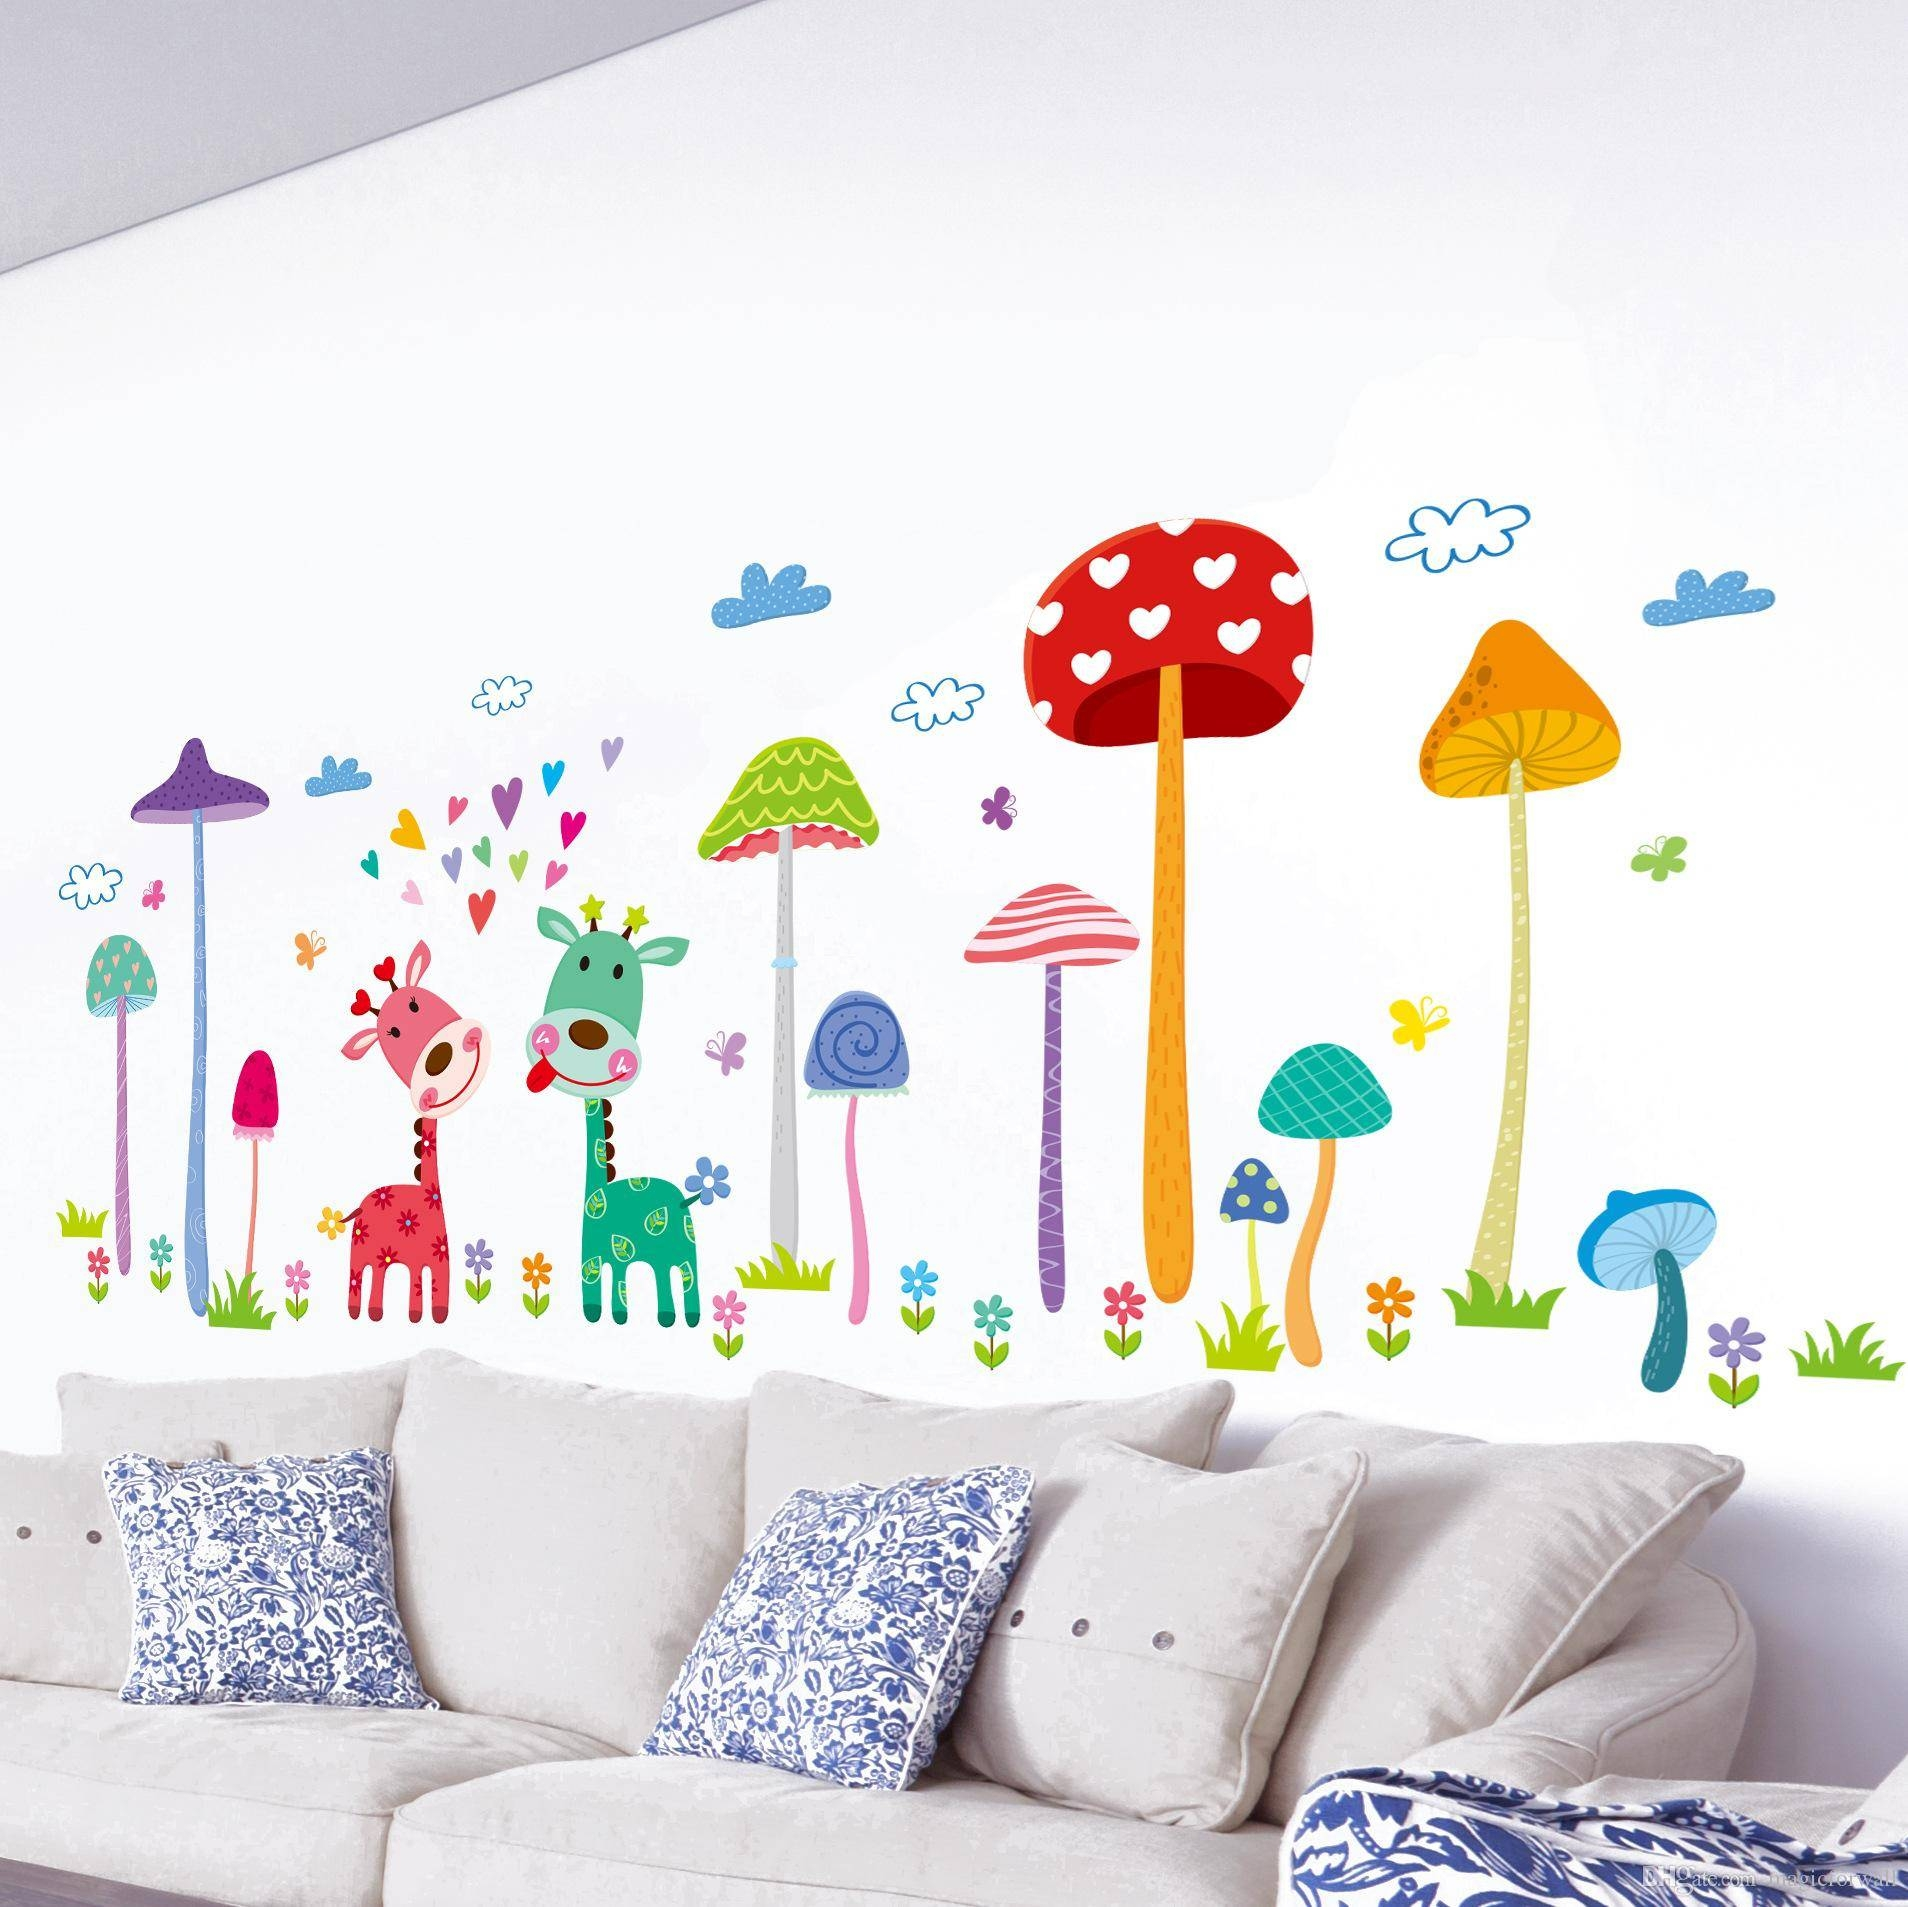 Forest Mushroom Deer Animals Home Wall Art Mural Decor Kids Babies In Current Nursery Animal Wall Art (View 8 of 20)